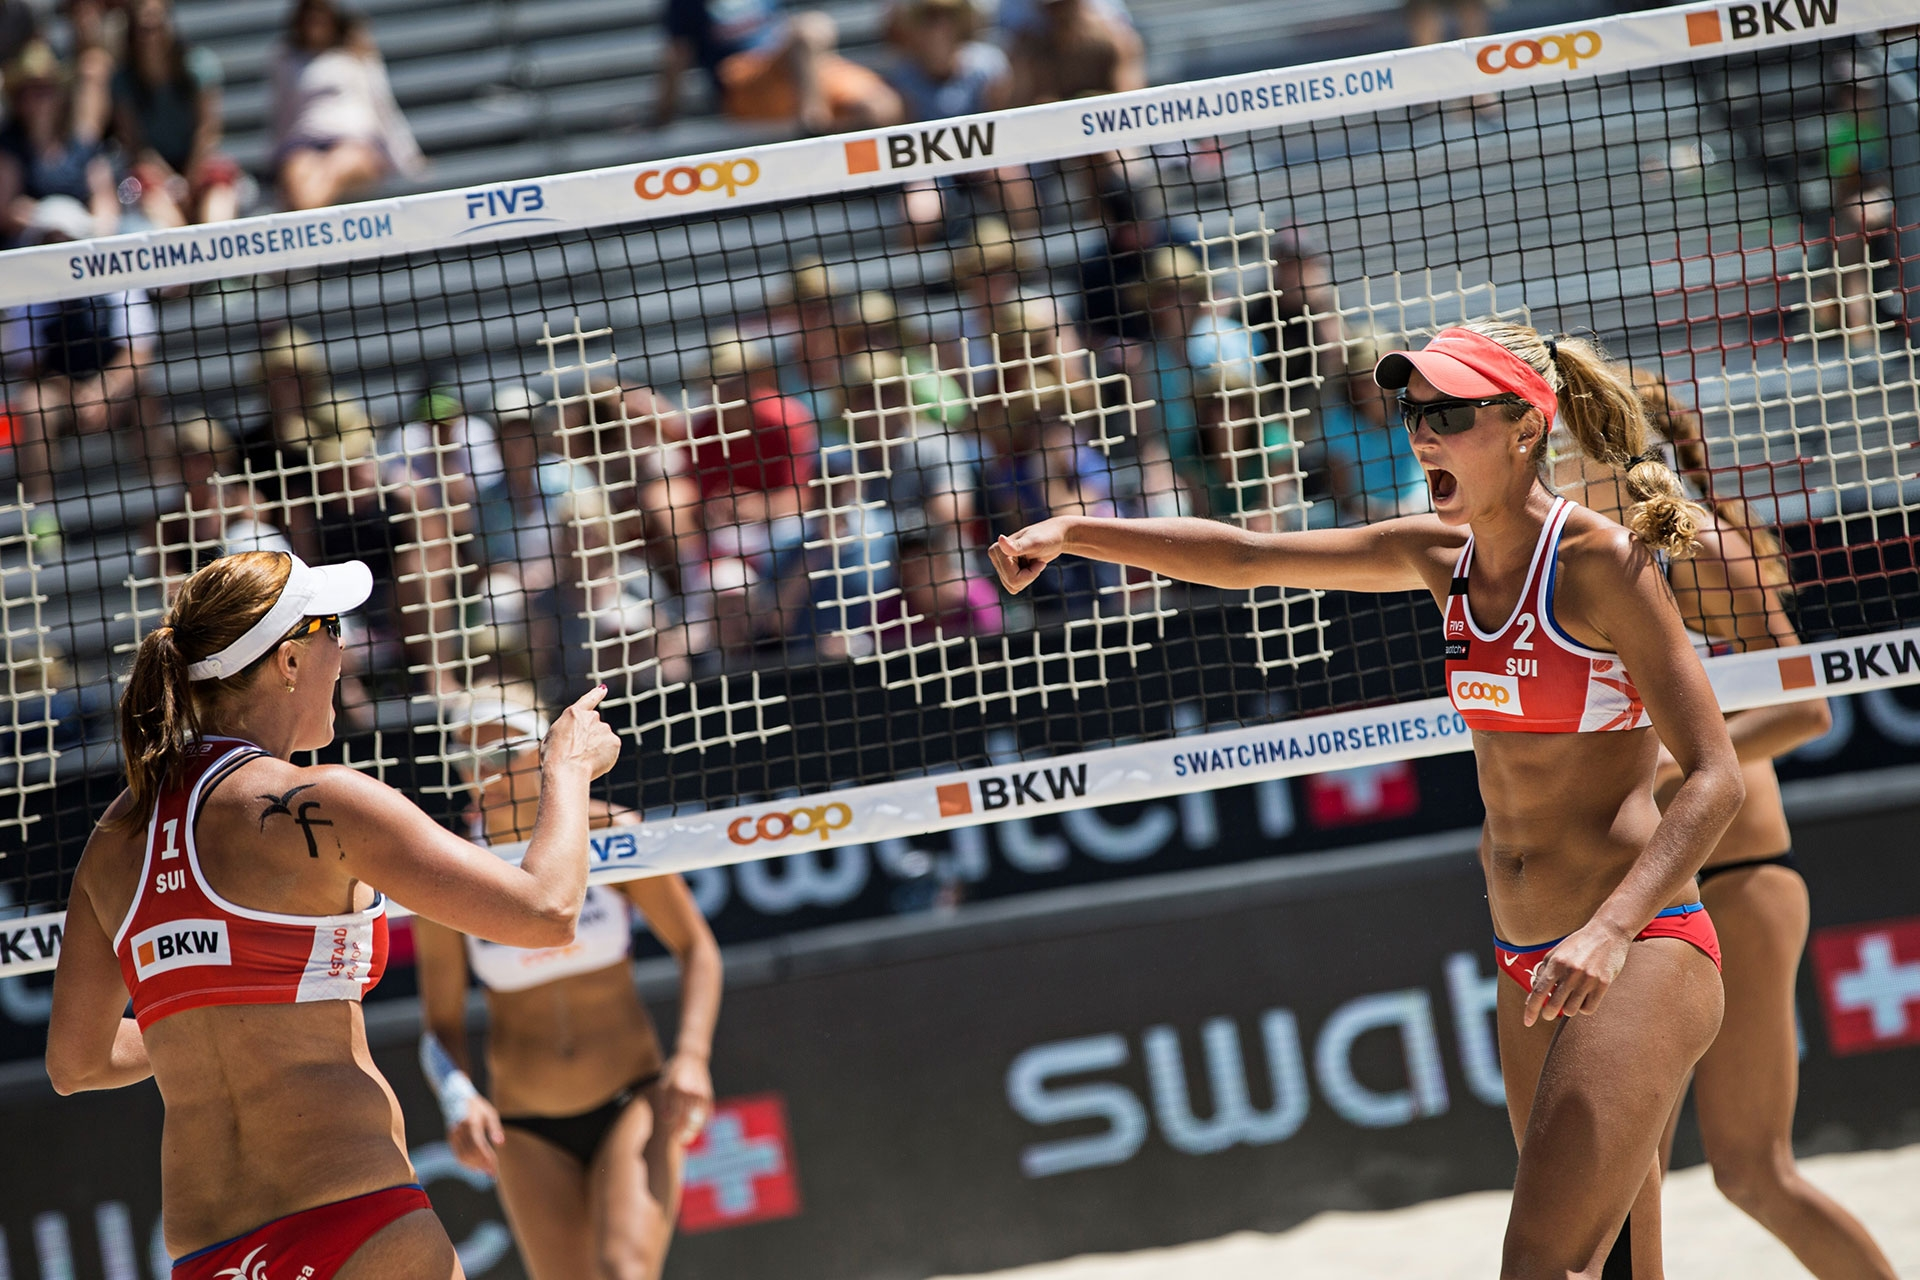 Isabelle Forrer (left) and Anouk Vergé-Dépré celebrated their first ever FIVB-Gold this season. Credit: Samo Vidic